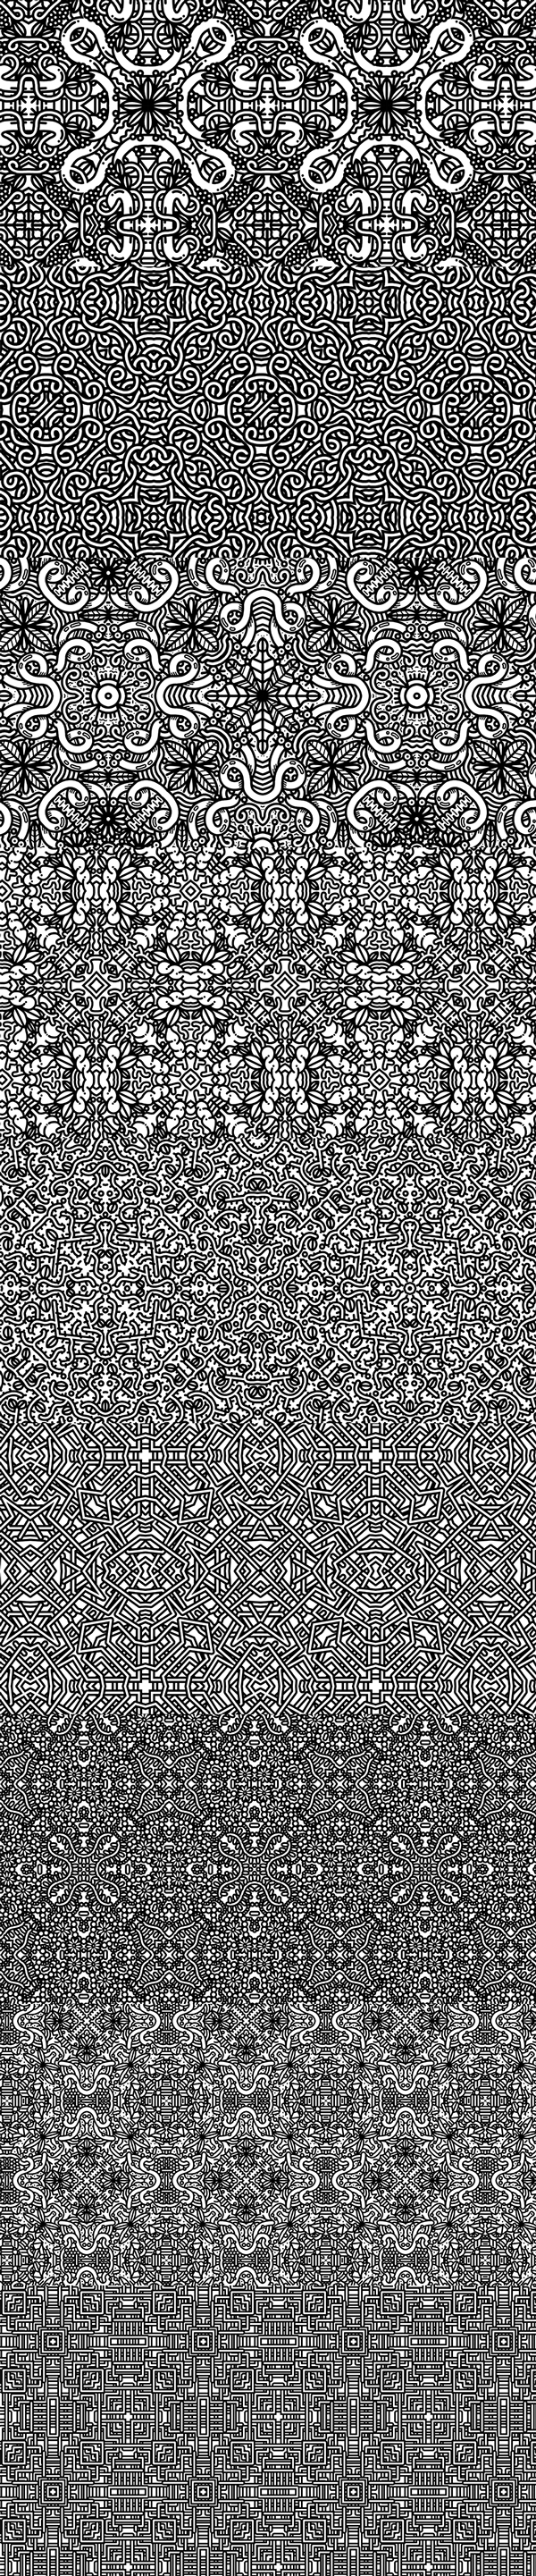 Playing with Patterns (I)